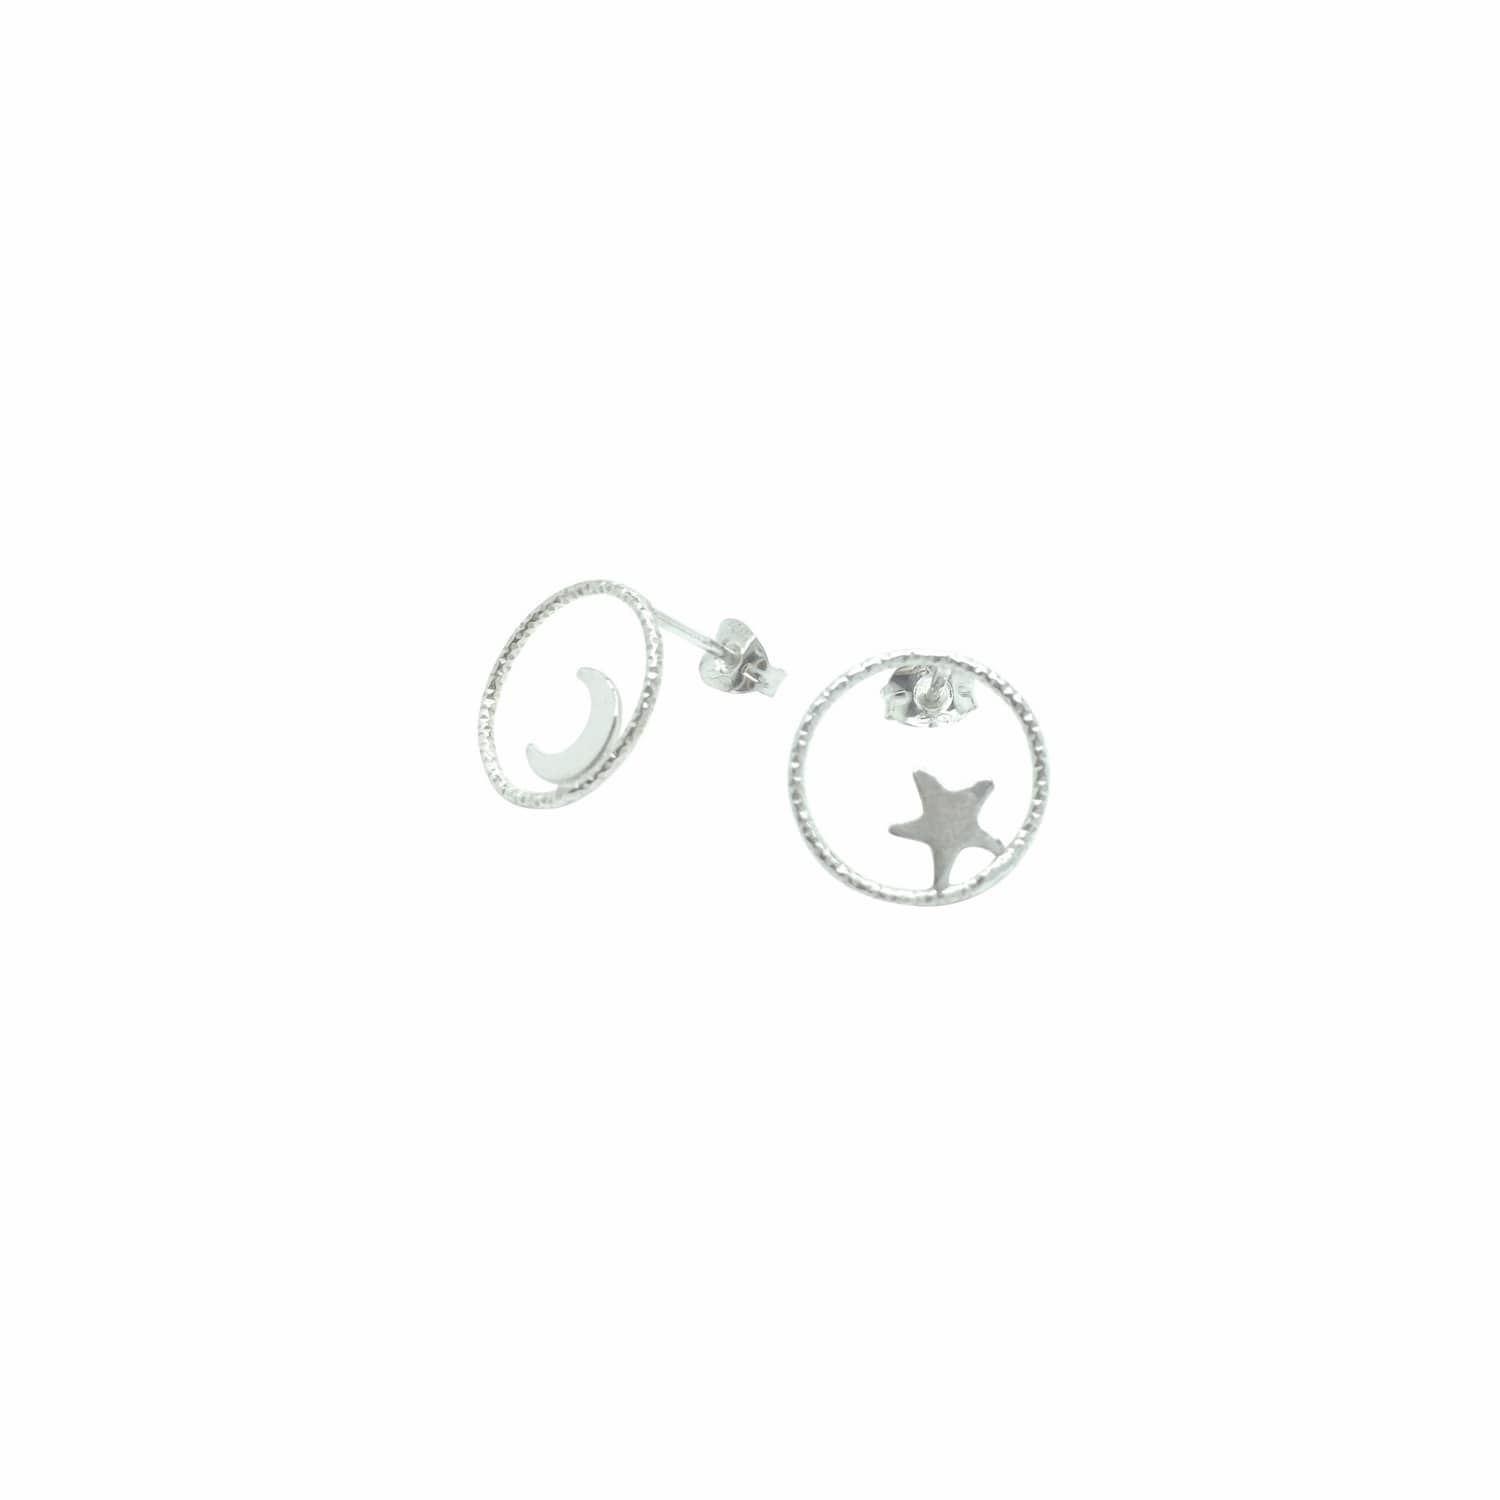 38ce10913a1 Large Circle Star and Moon Stud Earrings Sterling Silver by Lucy Ashton  Jewellery